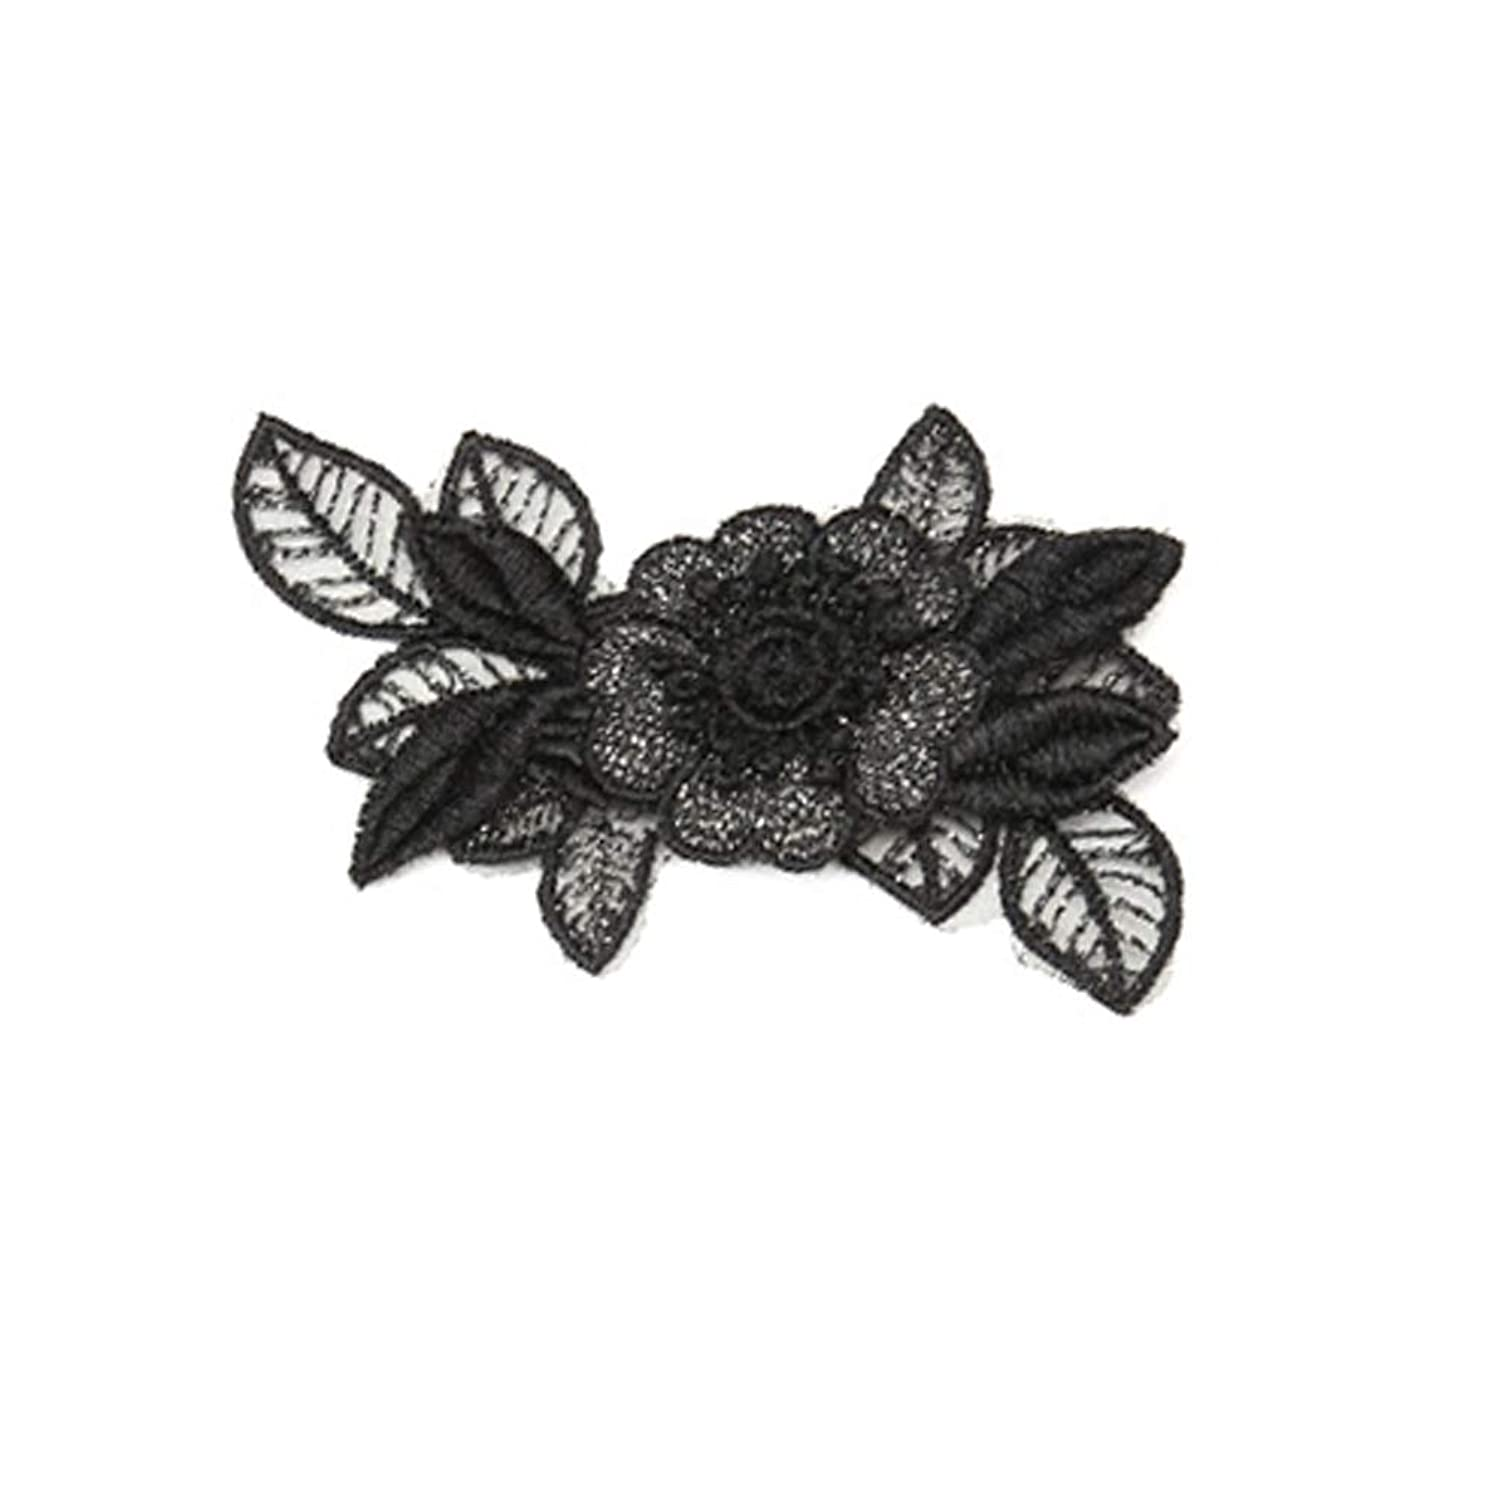 XUNHUI 3D Small Black Embroidered Lace Flower Patch Sewing Clothes for Women 2 Pieces